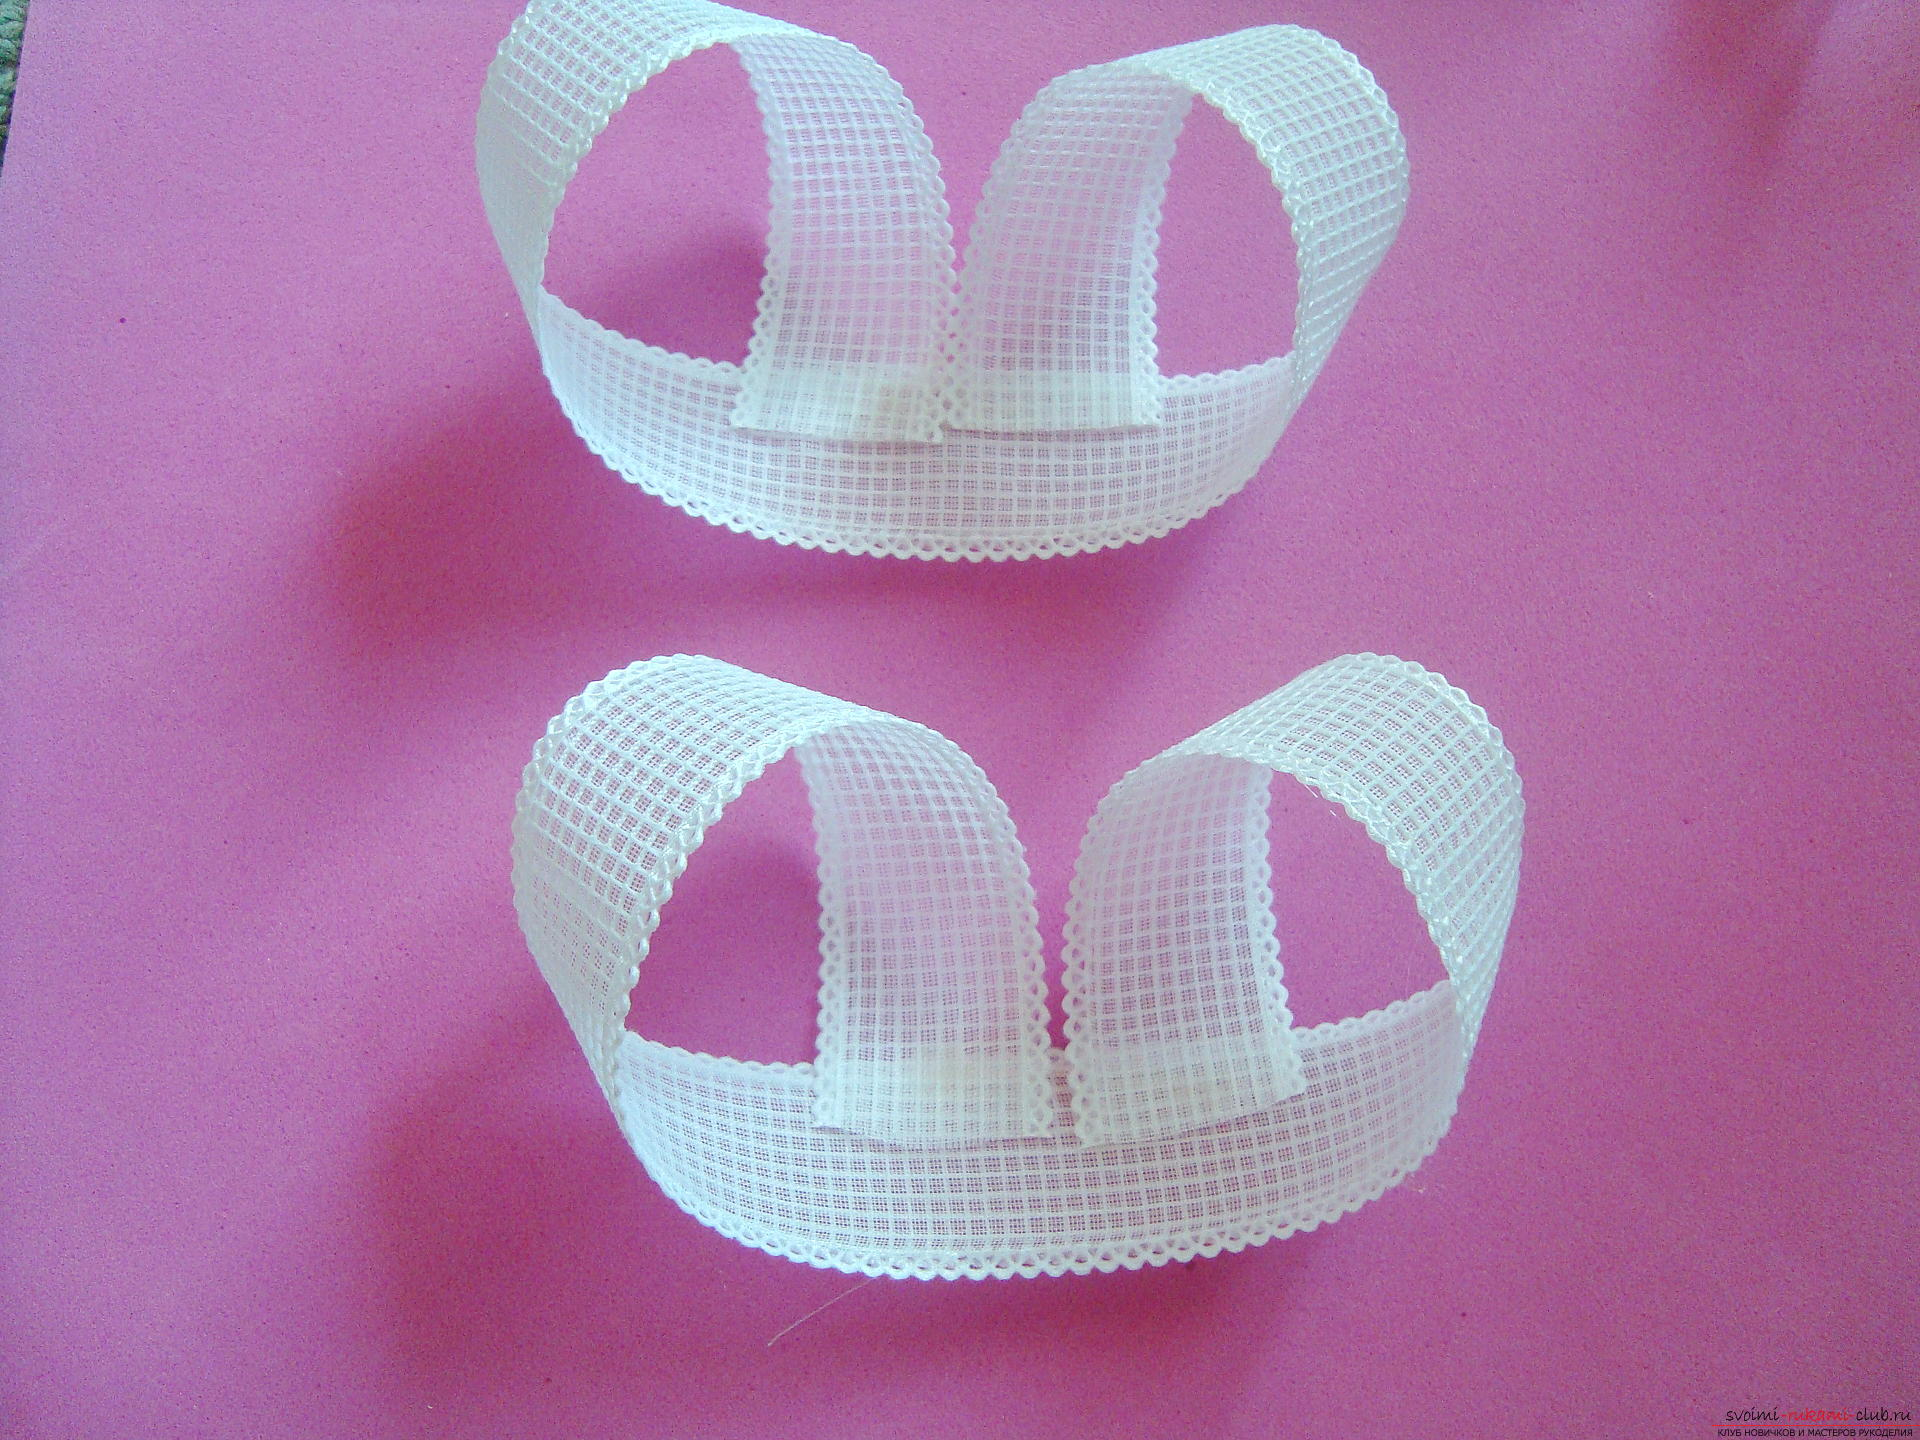 Step-by-step guide to making bows by September 1 for schoolgirls describing the steps and photos. Photo №7